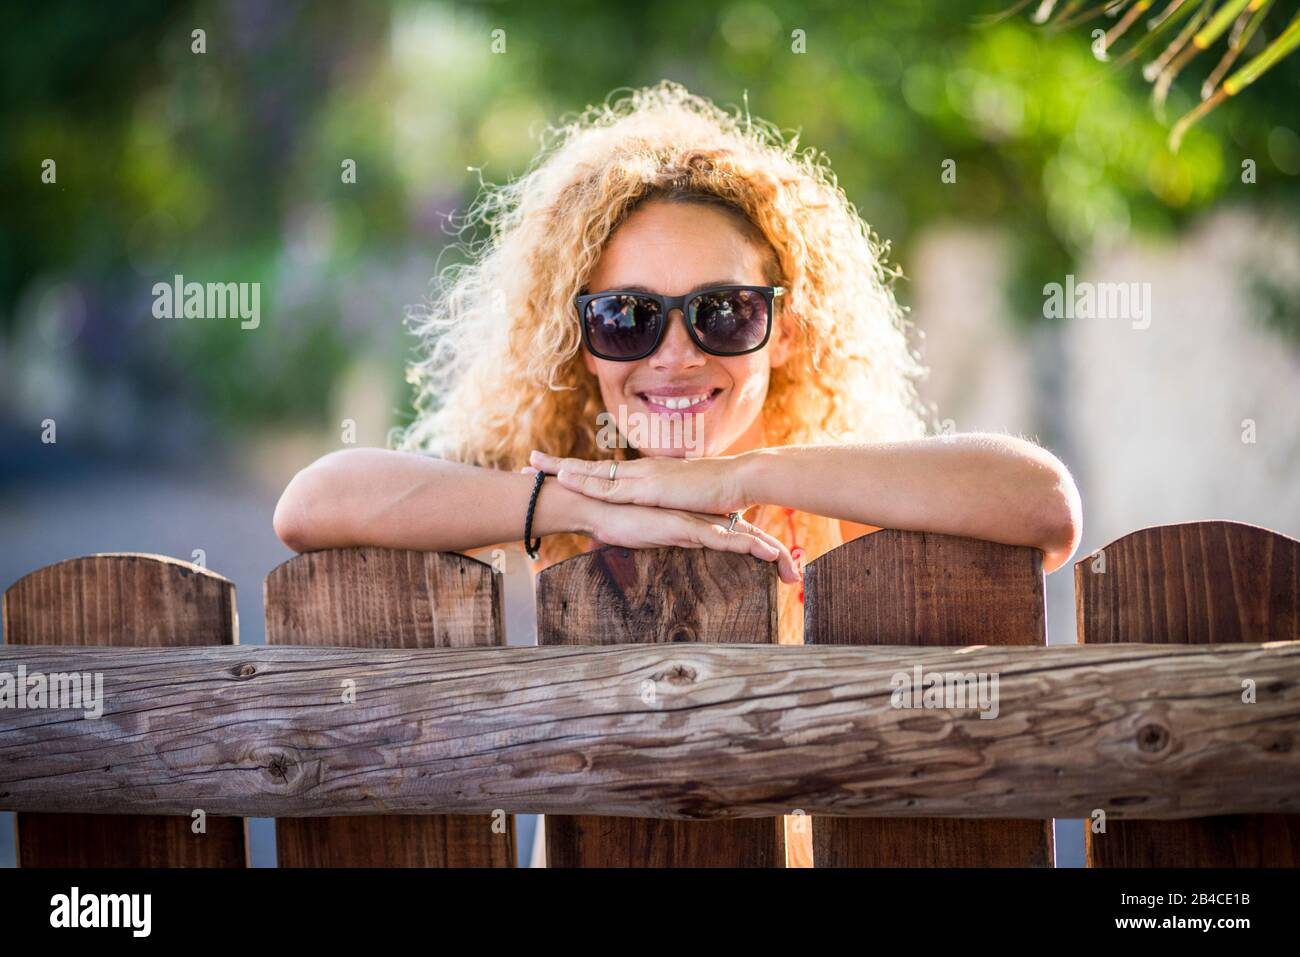 Portrait of beautiful cheerful happy woman with sun in backlight and nice smile looking at the camera - green nature background - enjoying the outdoor leisure activity in the countryside Stock Photo